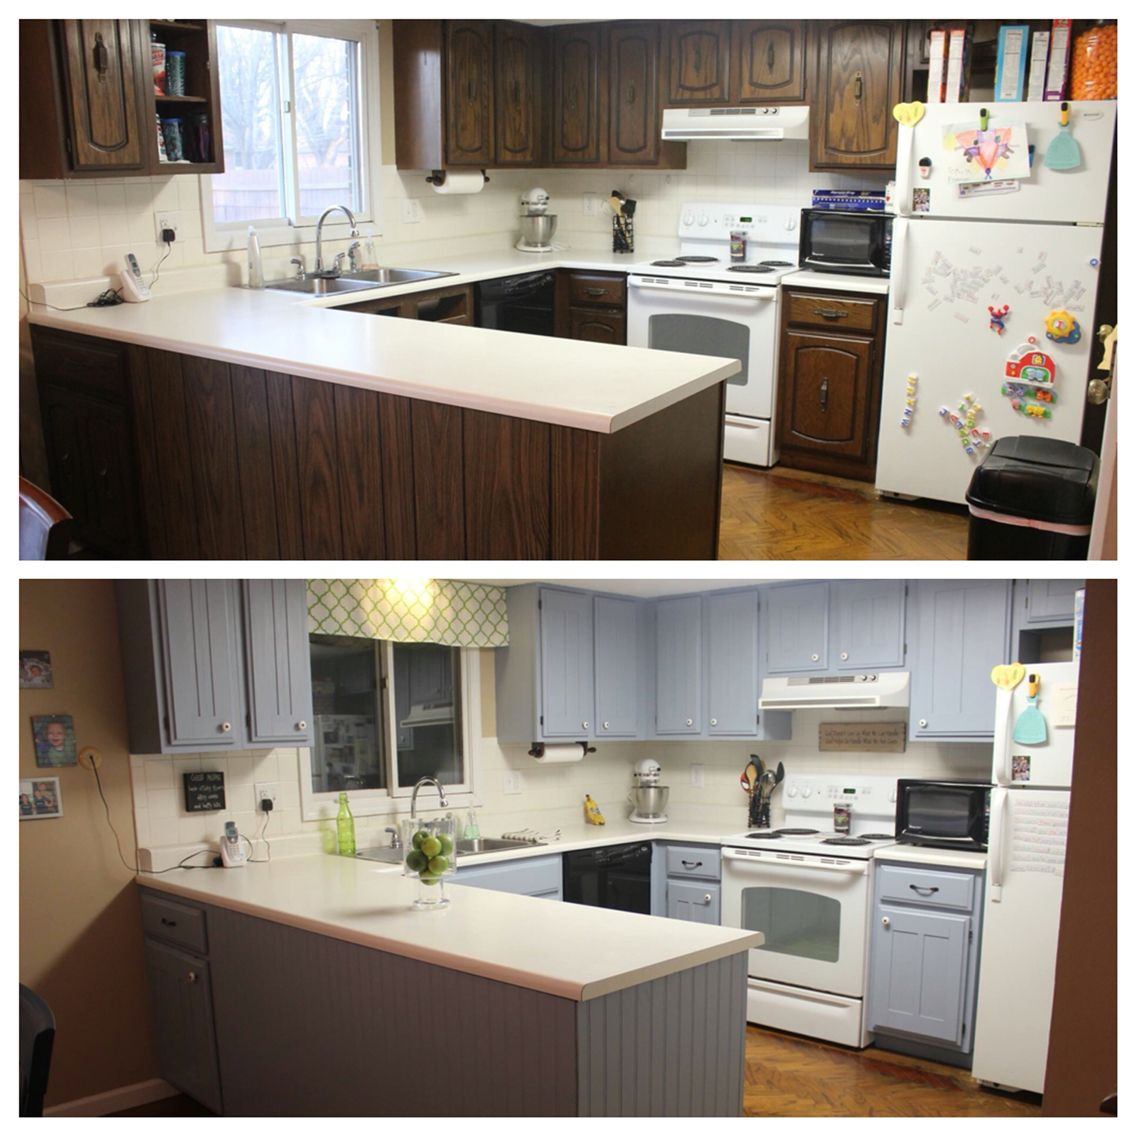 Adding trim to existing cabinets and a fresh coat of blue ...